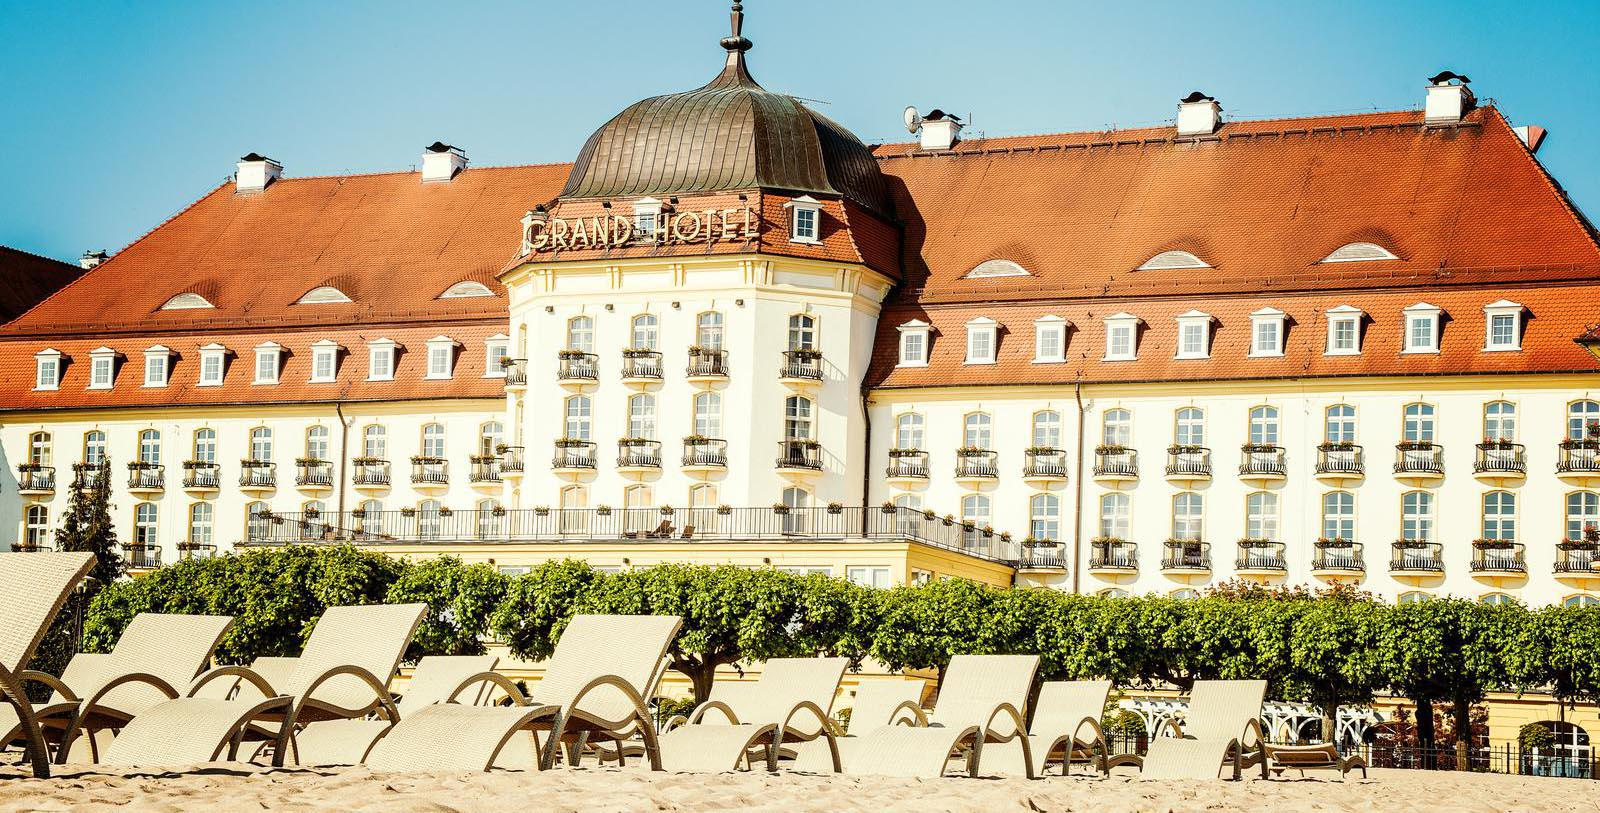 Image of Hotel Façade Sofitel Grand Sopot, 1927, Member of Historic Hotels Worldwide, in Sopot, Poland, Overview